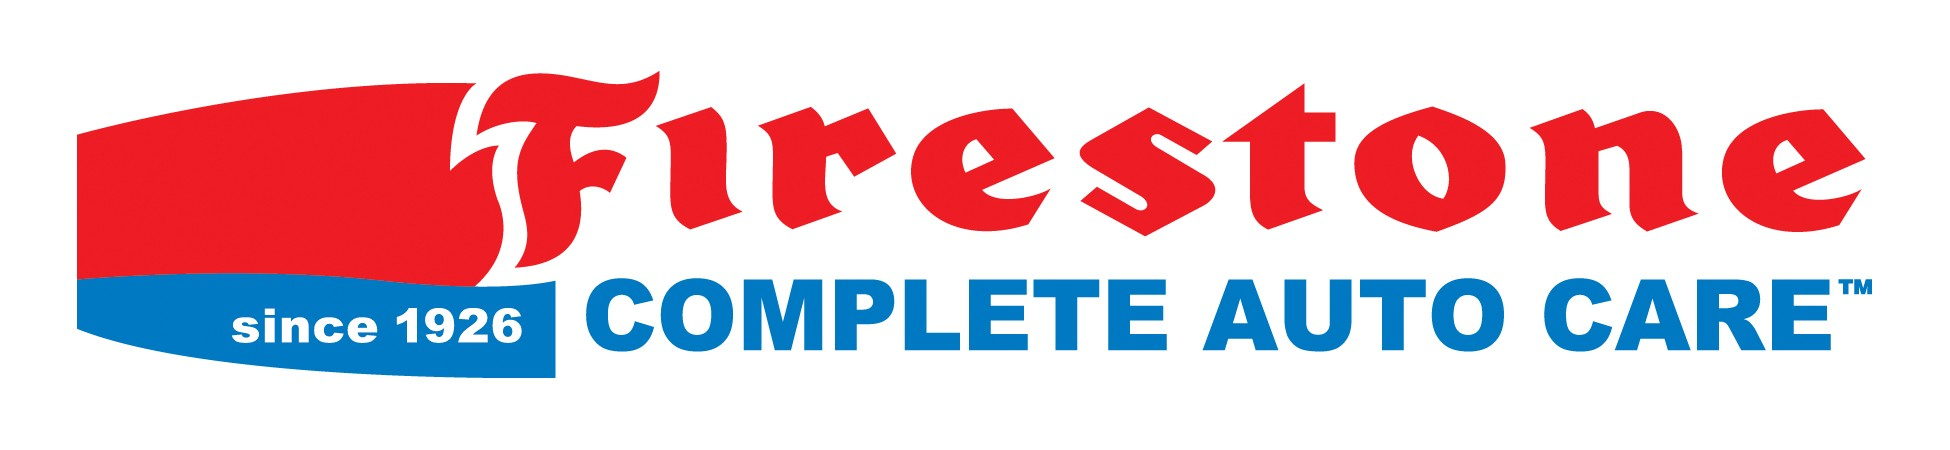 Tires & Auto Service At 103 Causey Ave In Milford, De | Firestone Pluspng.com  - Firestone Logo PNG